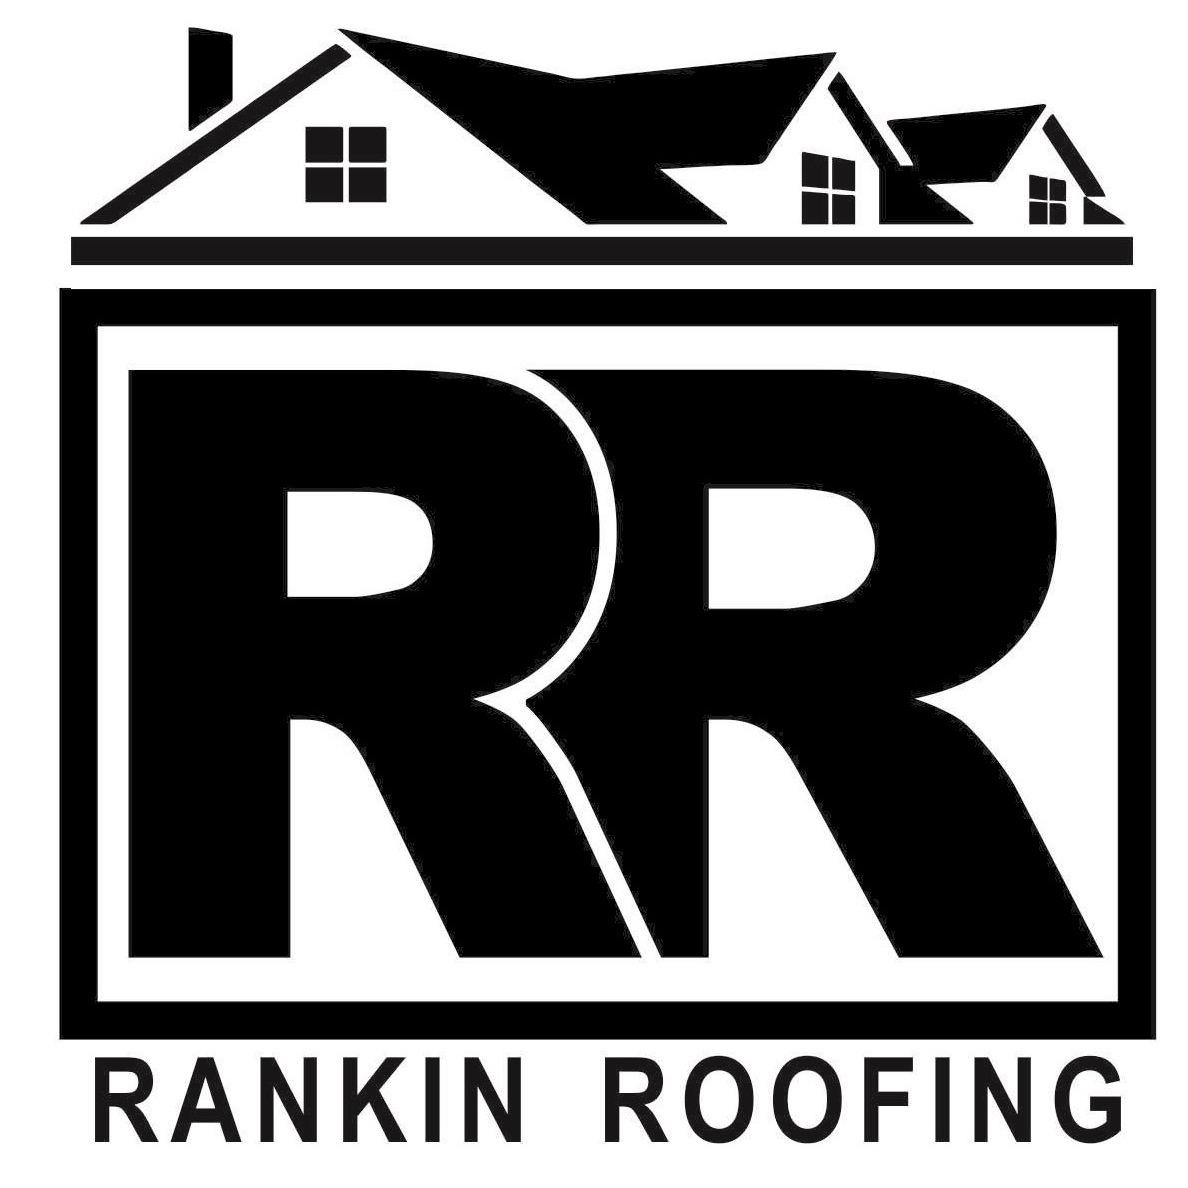 Rankin Roofing image 20